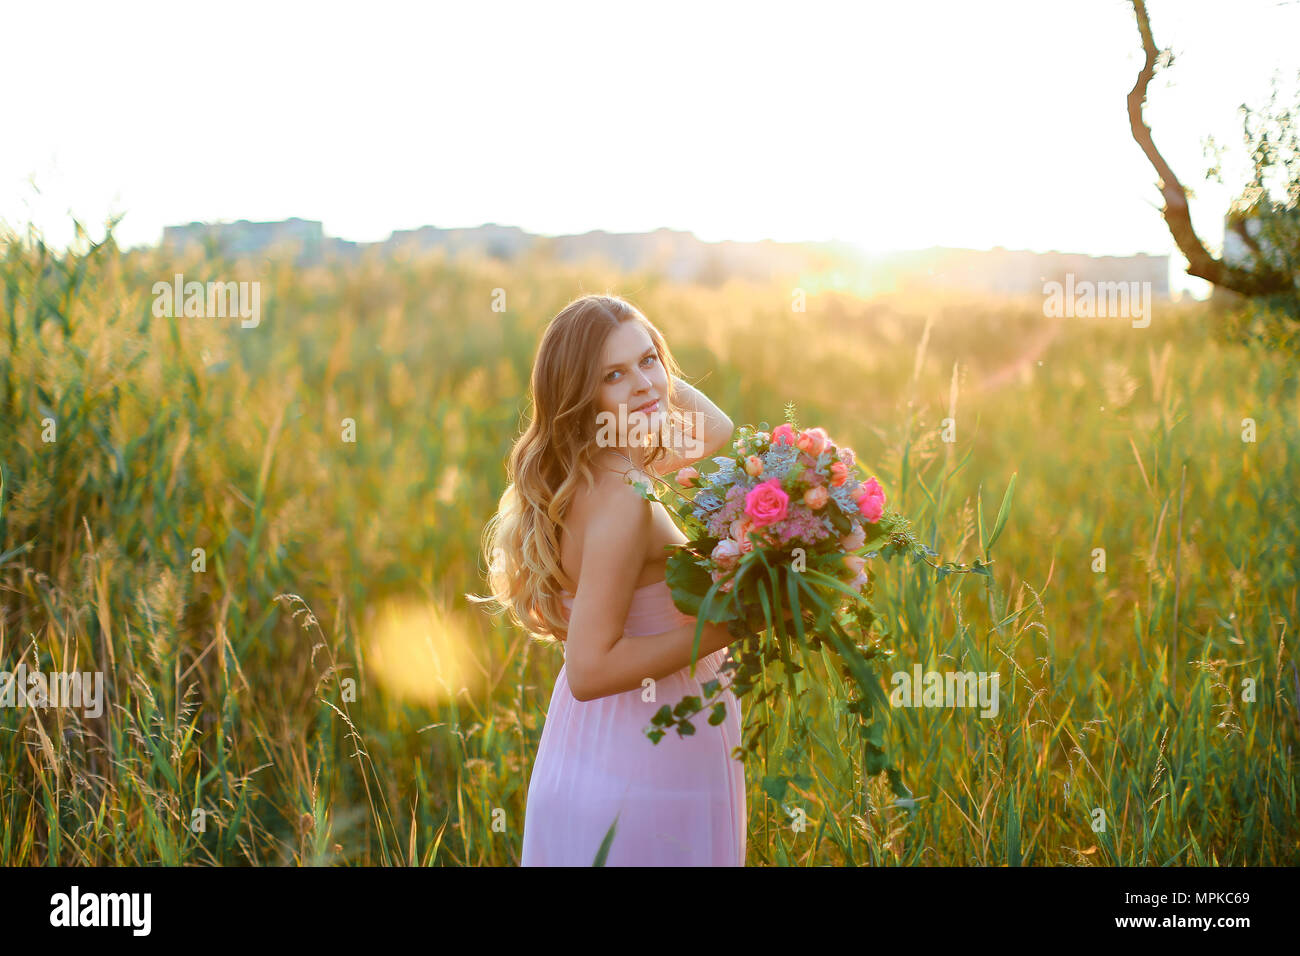 Pregnant young caucasian woman wearing pink dress with bouquet of flowers standing in steppe background. - Stock Image